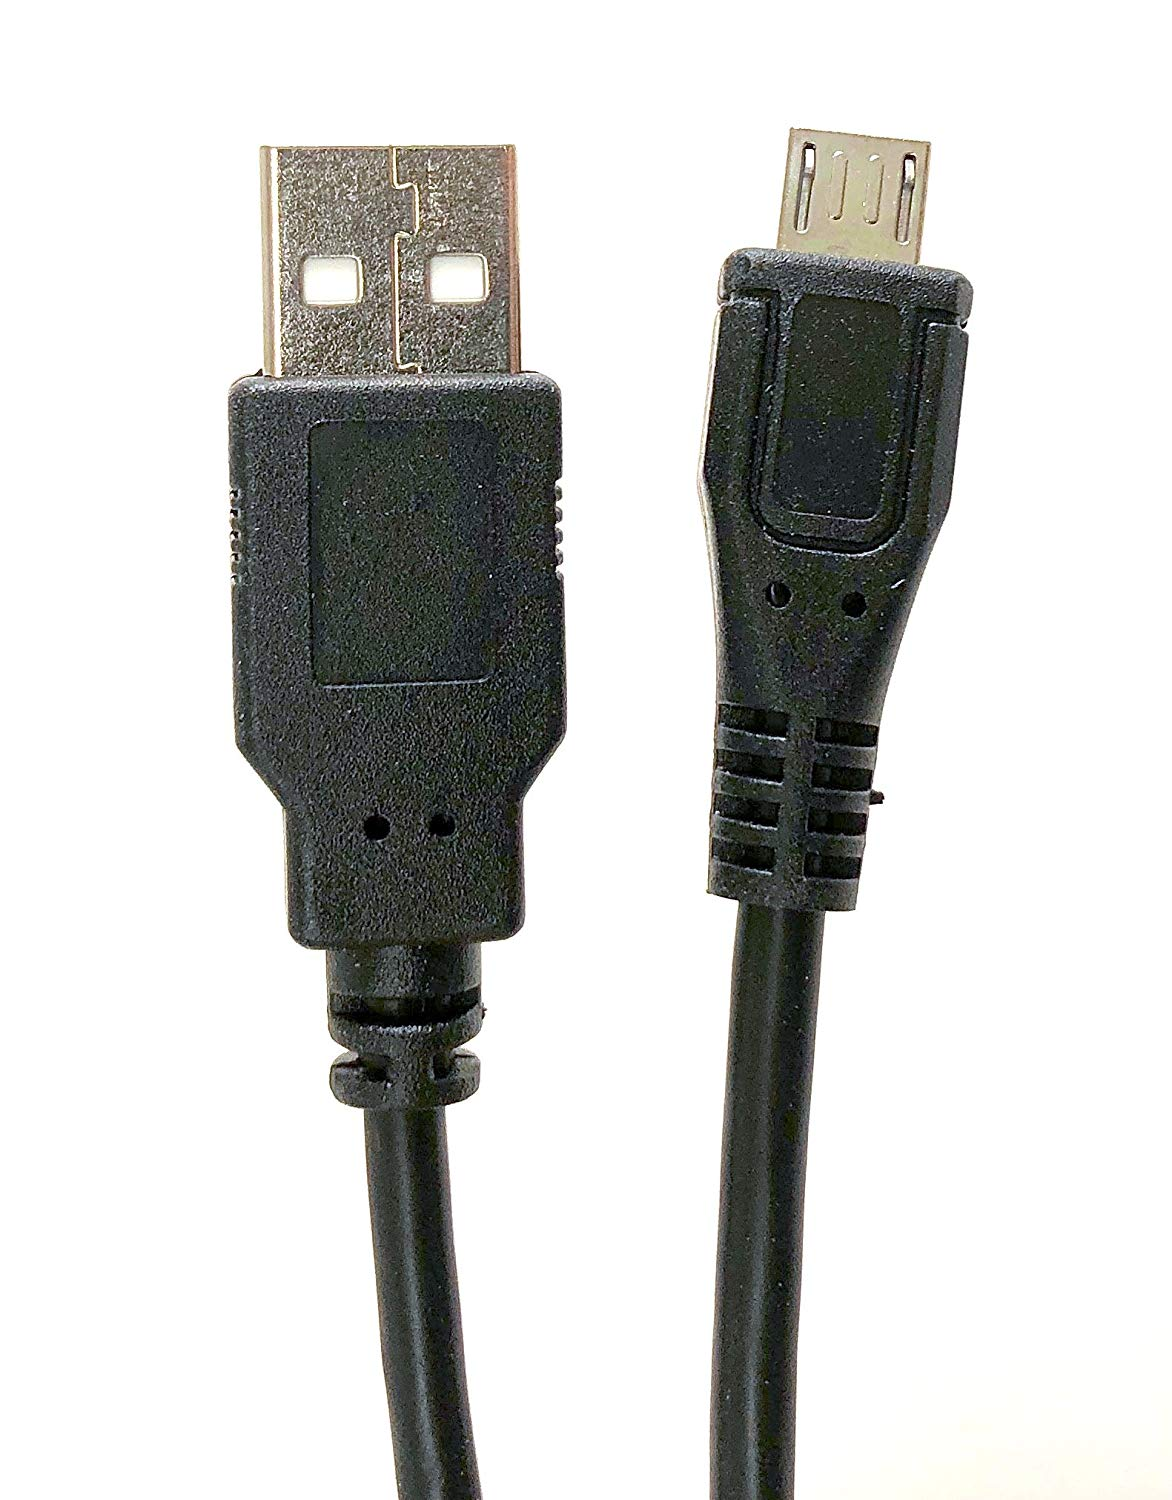 Micro Connectors, Inc. 6 feet USB 2.0 Cable A Type to Micro USB B Type (E07-131)